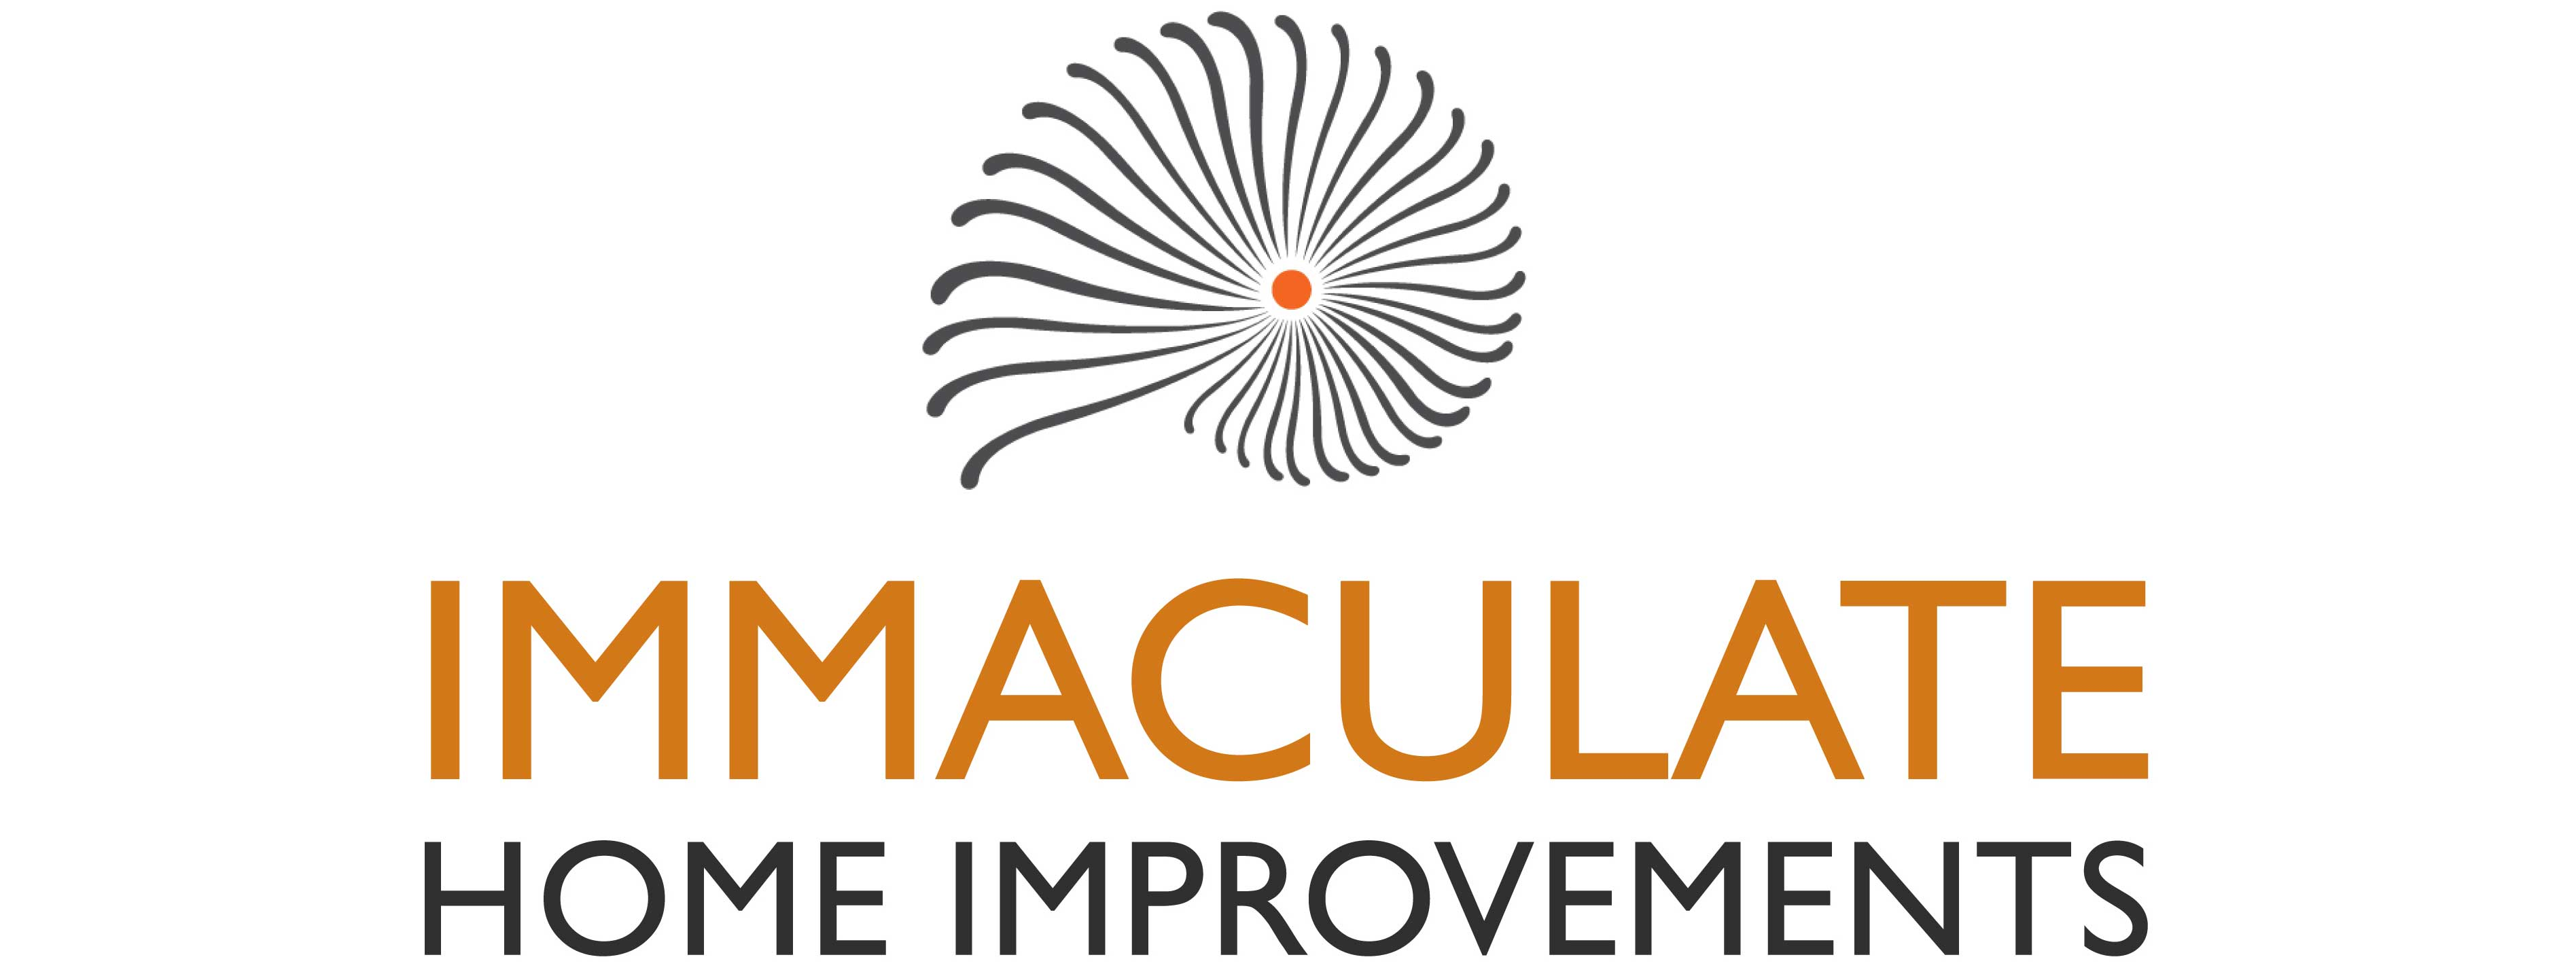 Immaculate Home Improvements Bournemouth